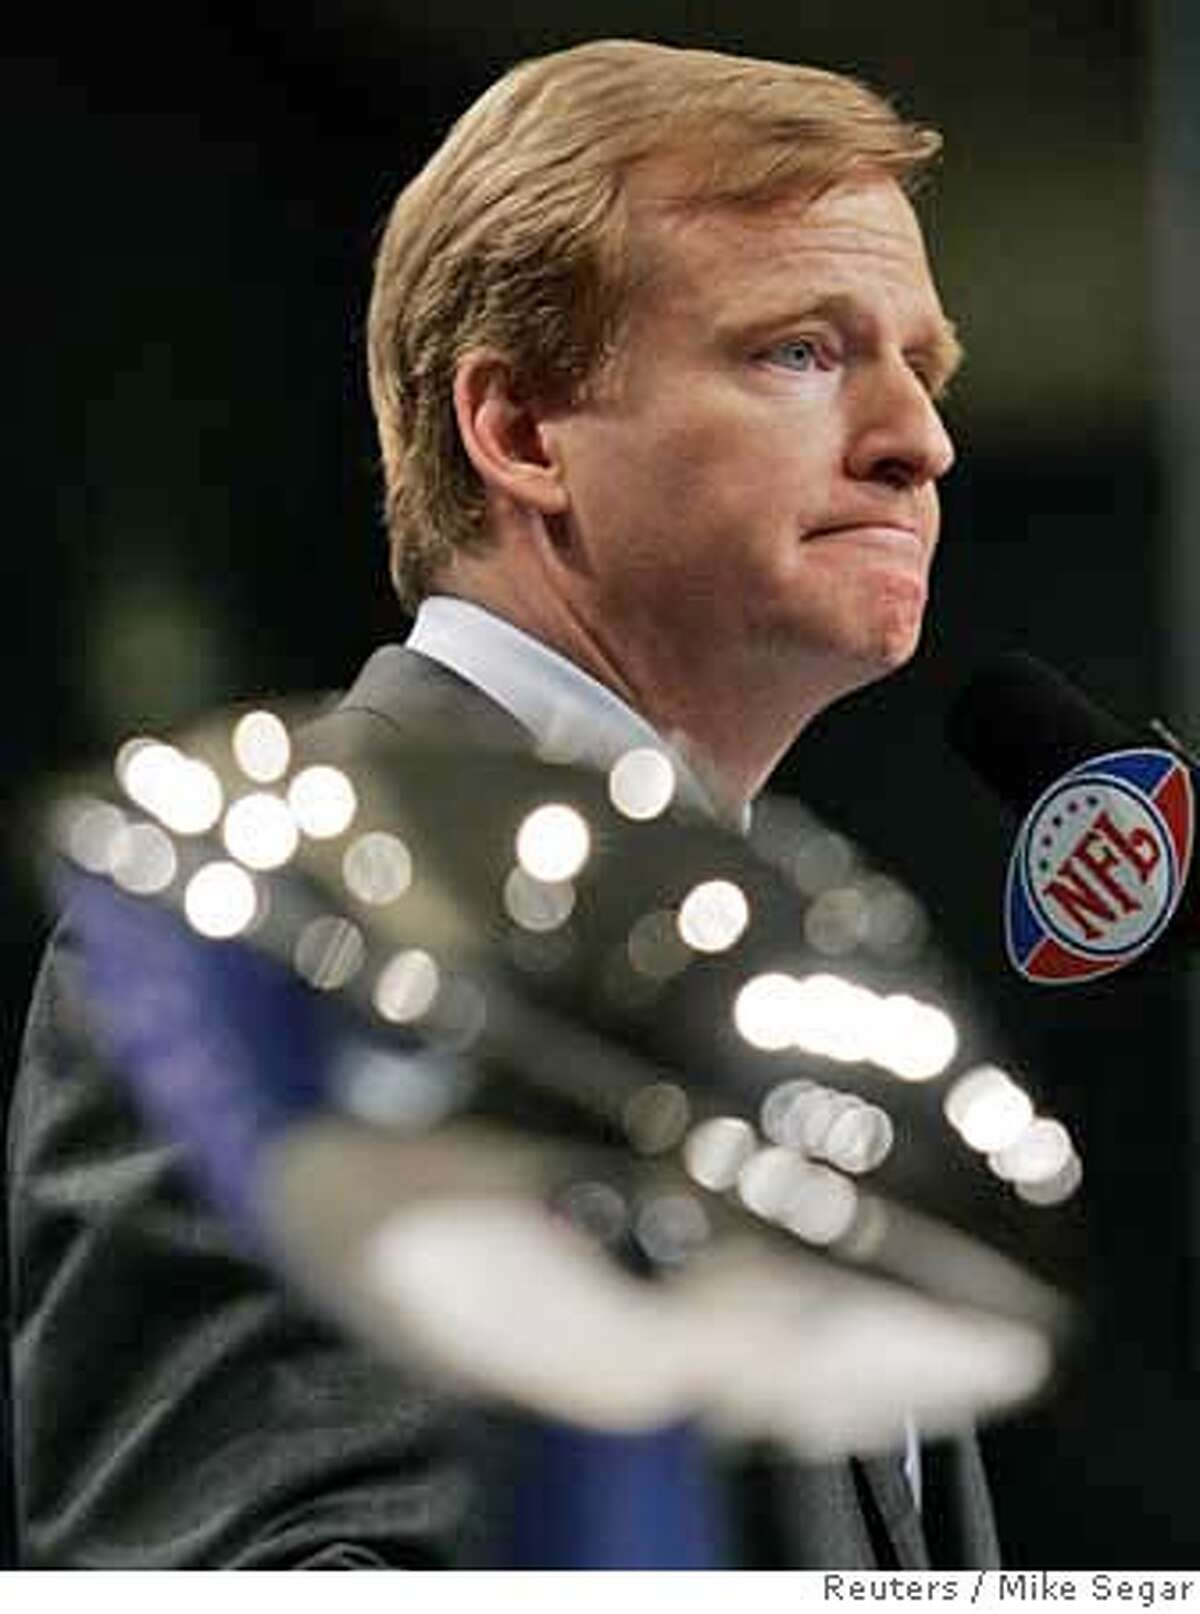 NFL Commissioner Roger Goodell speaks to reporters in Miami Beach, Florida February 2, 2007. The Super Bowl XLI will be played on Sunday. REUTERS/Mike Segar (UNITED STATES) 0